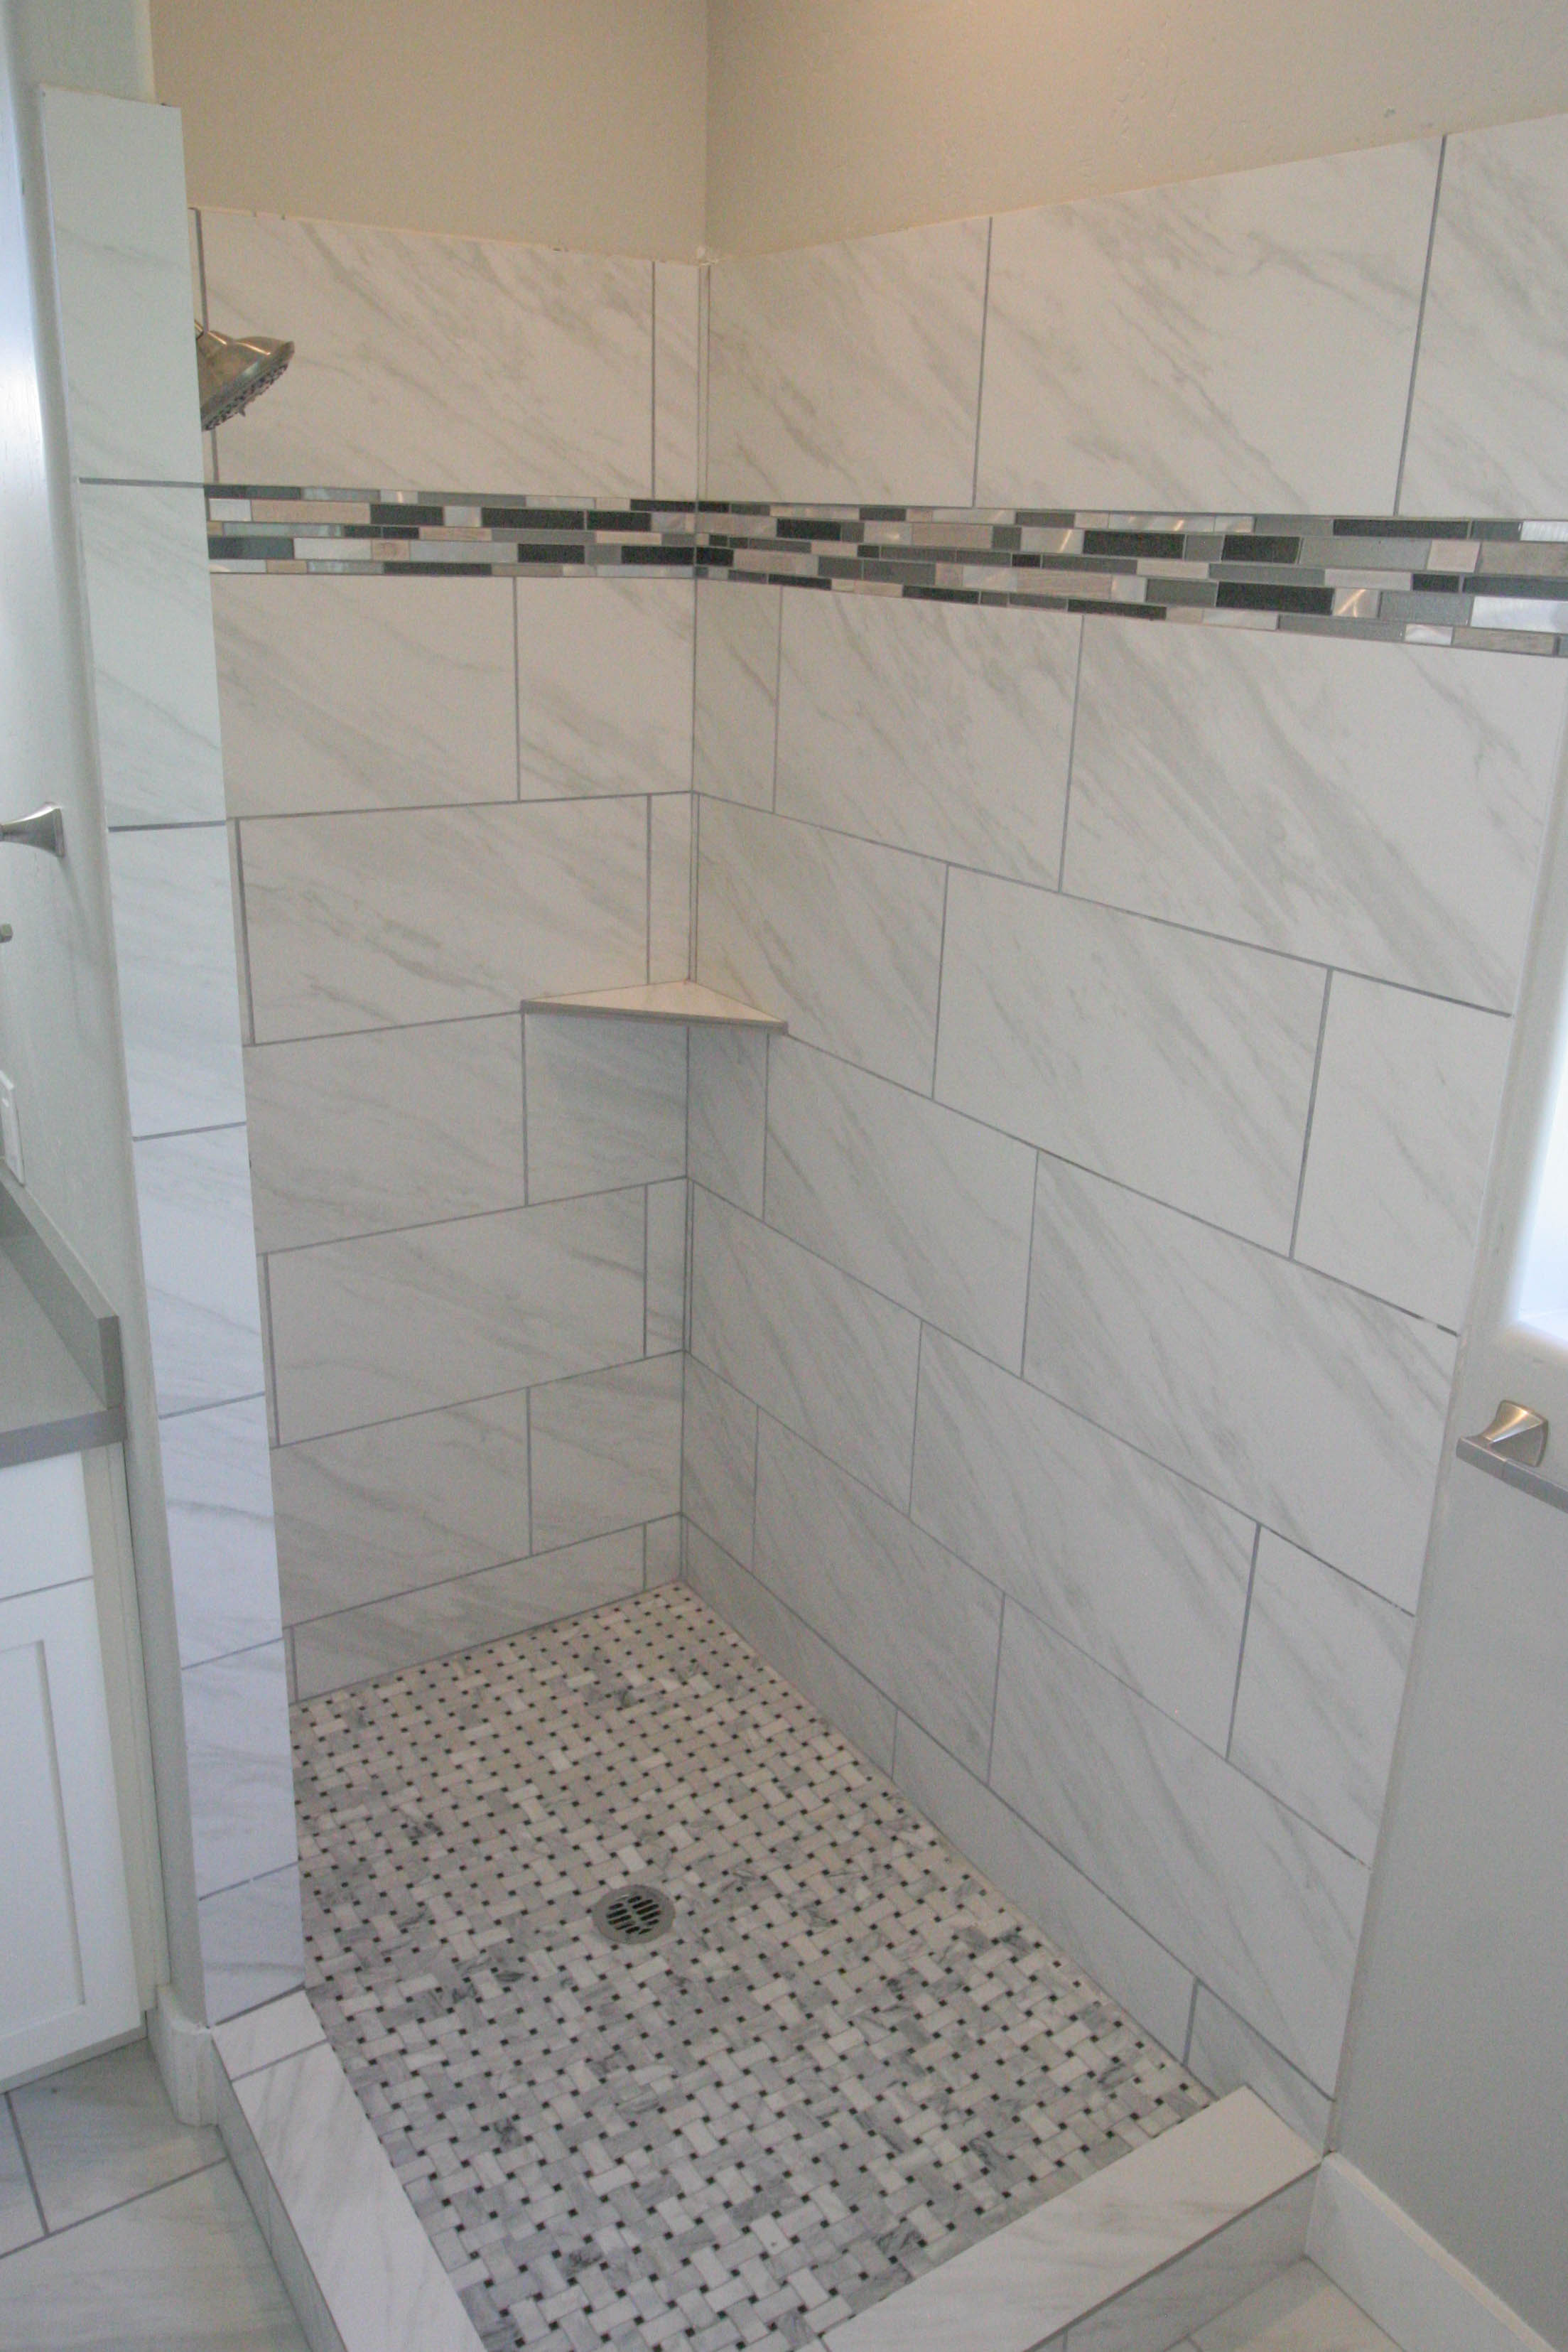 671Brookline masterbathroomshower.jpg